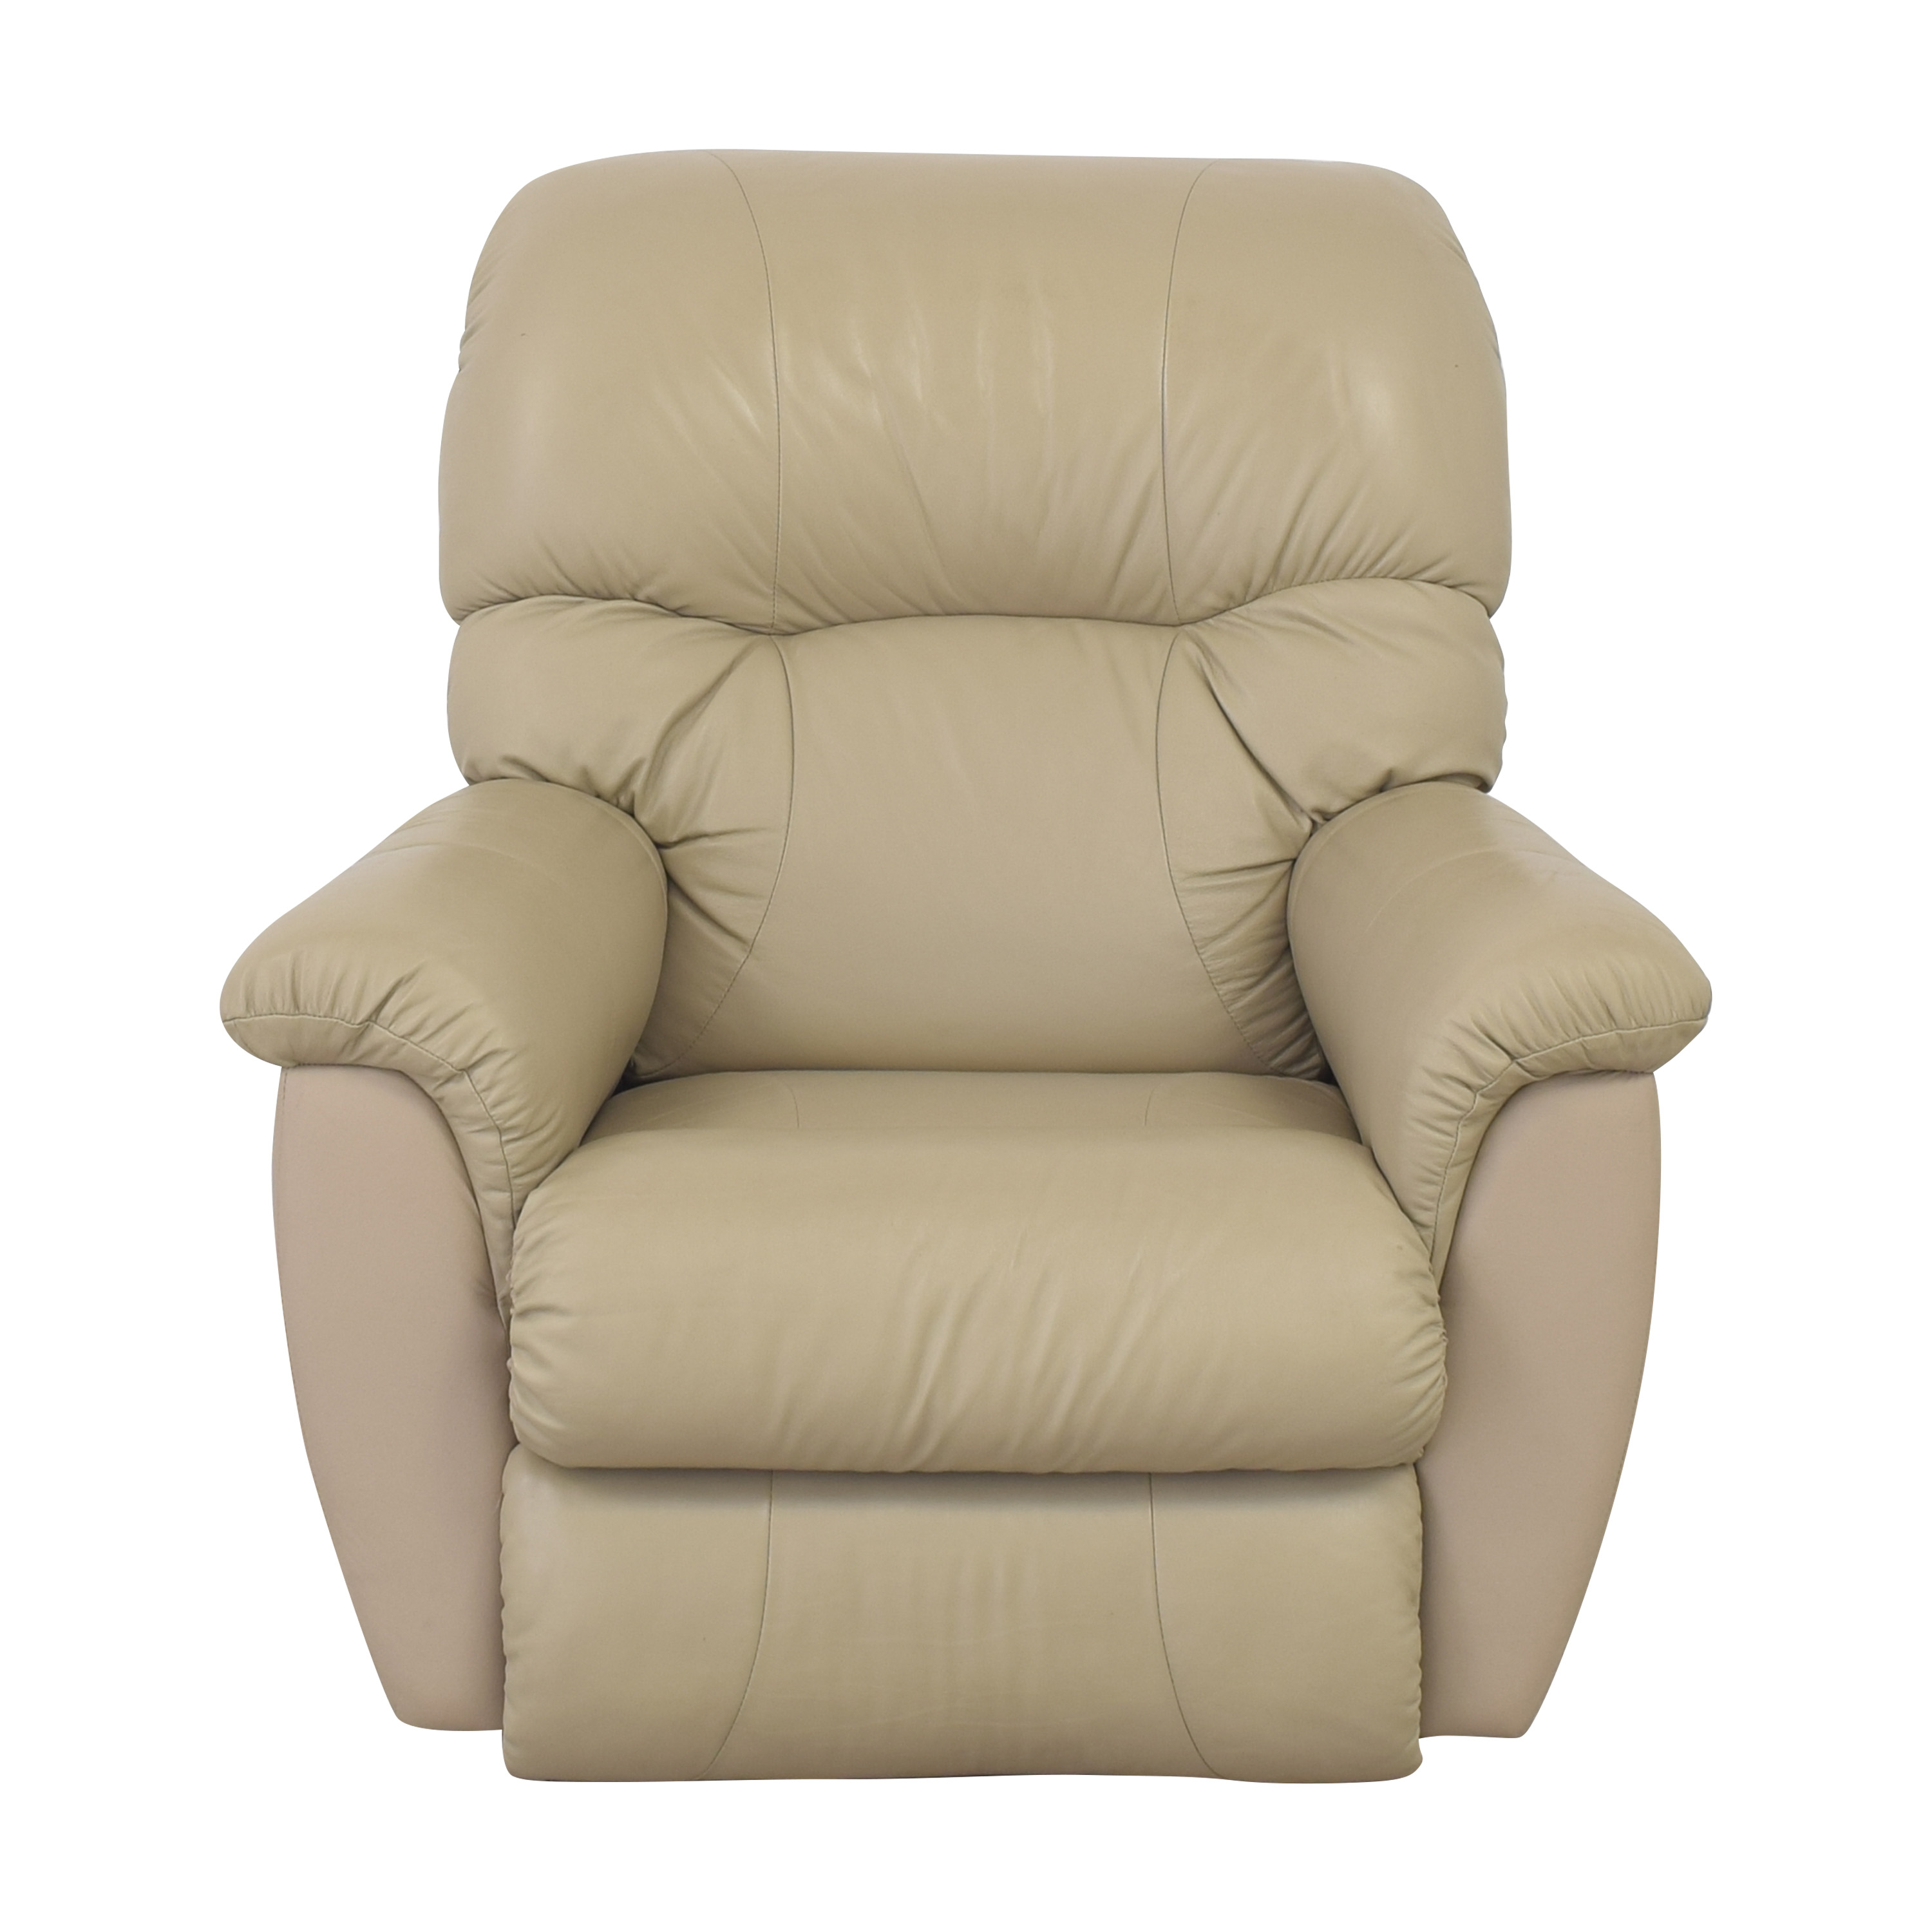 shop La-Z-Boy La-Z-Boy Recliner Arm Chair online